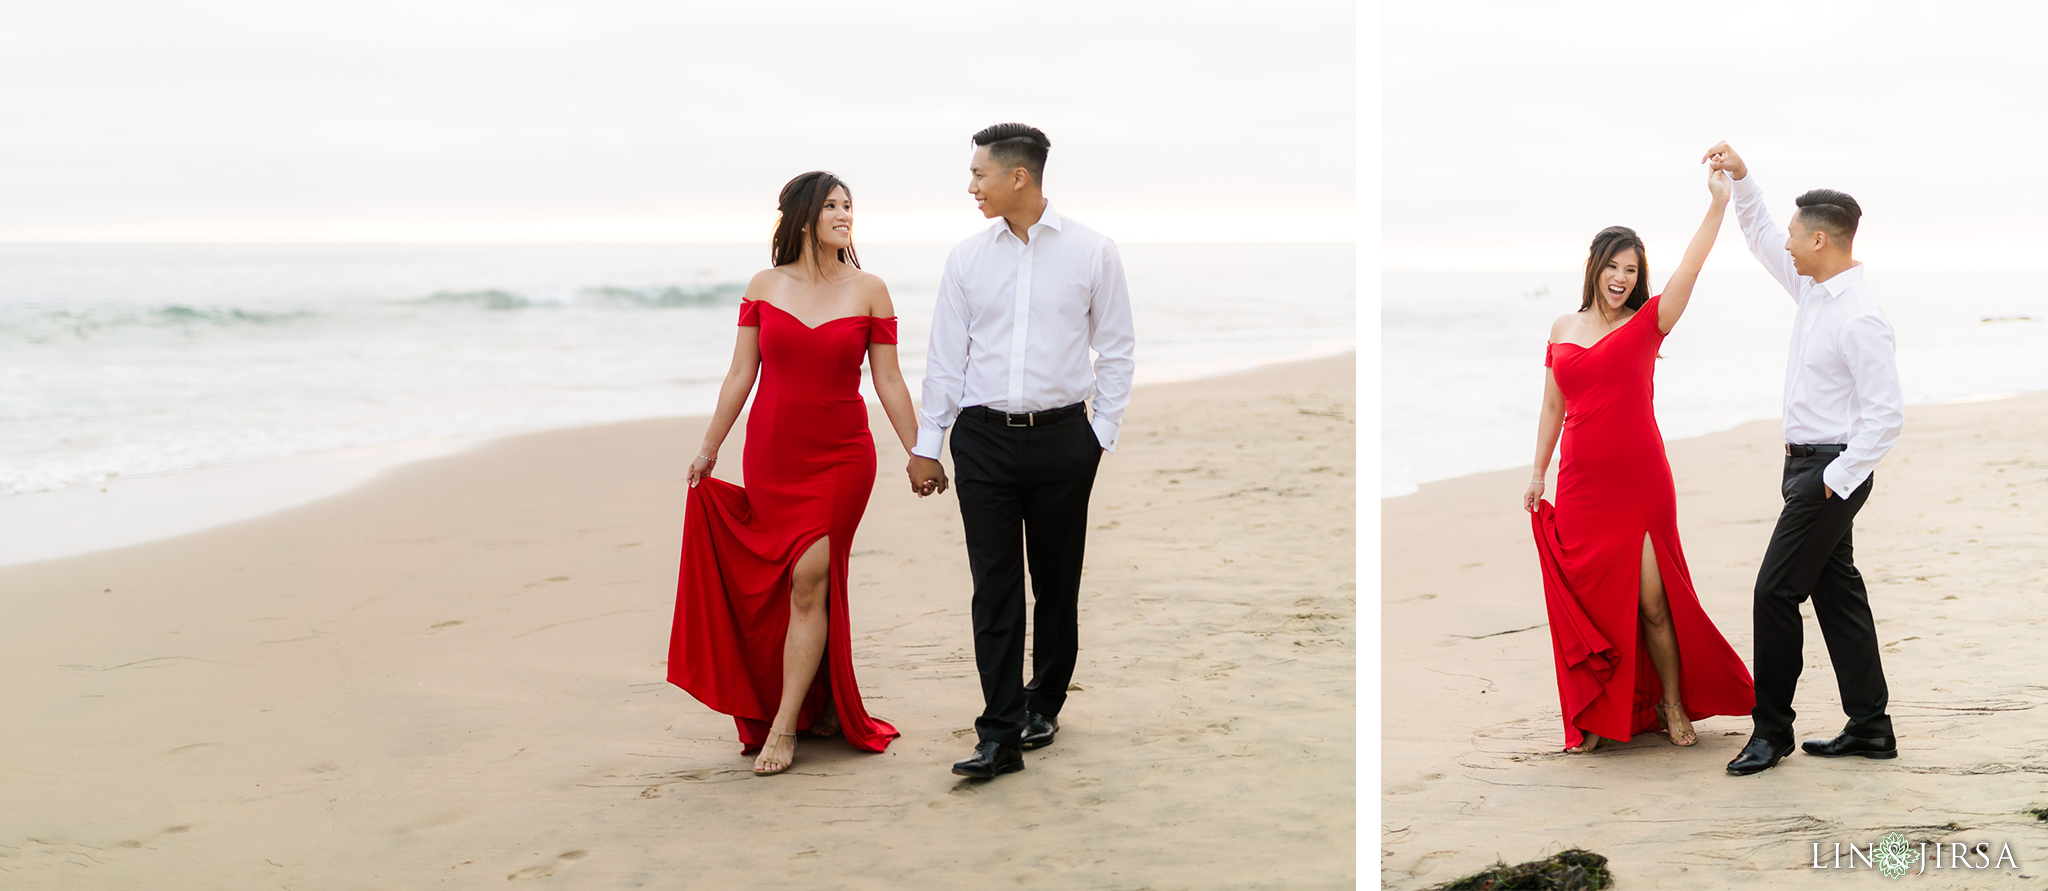 82 Crystal Cove Newport Beach Engagement Photography